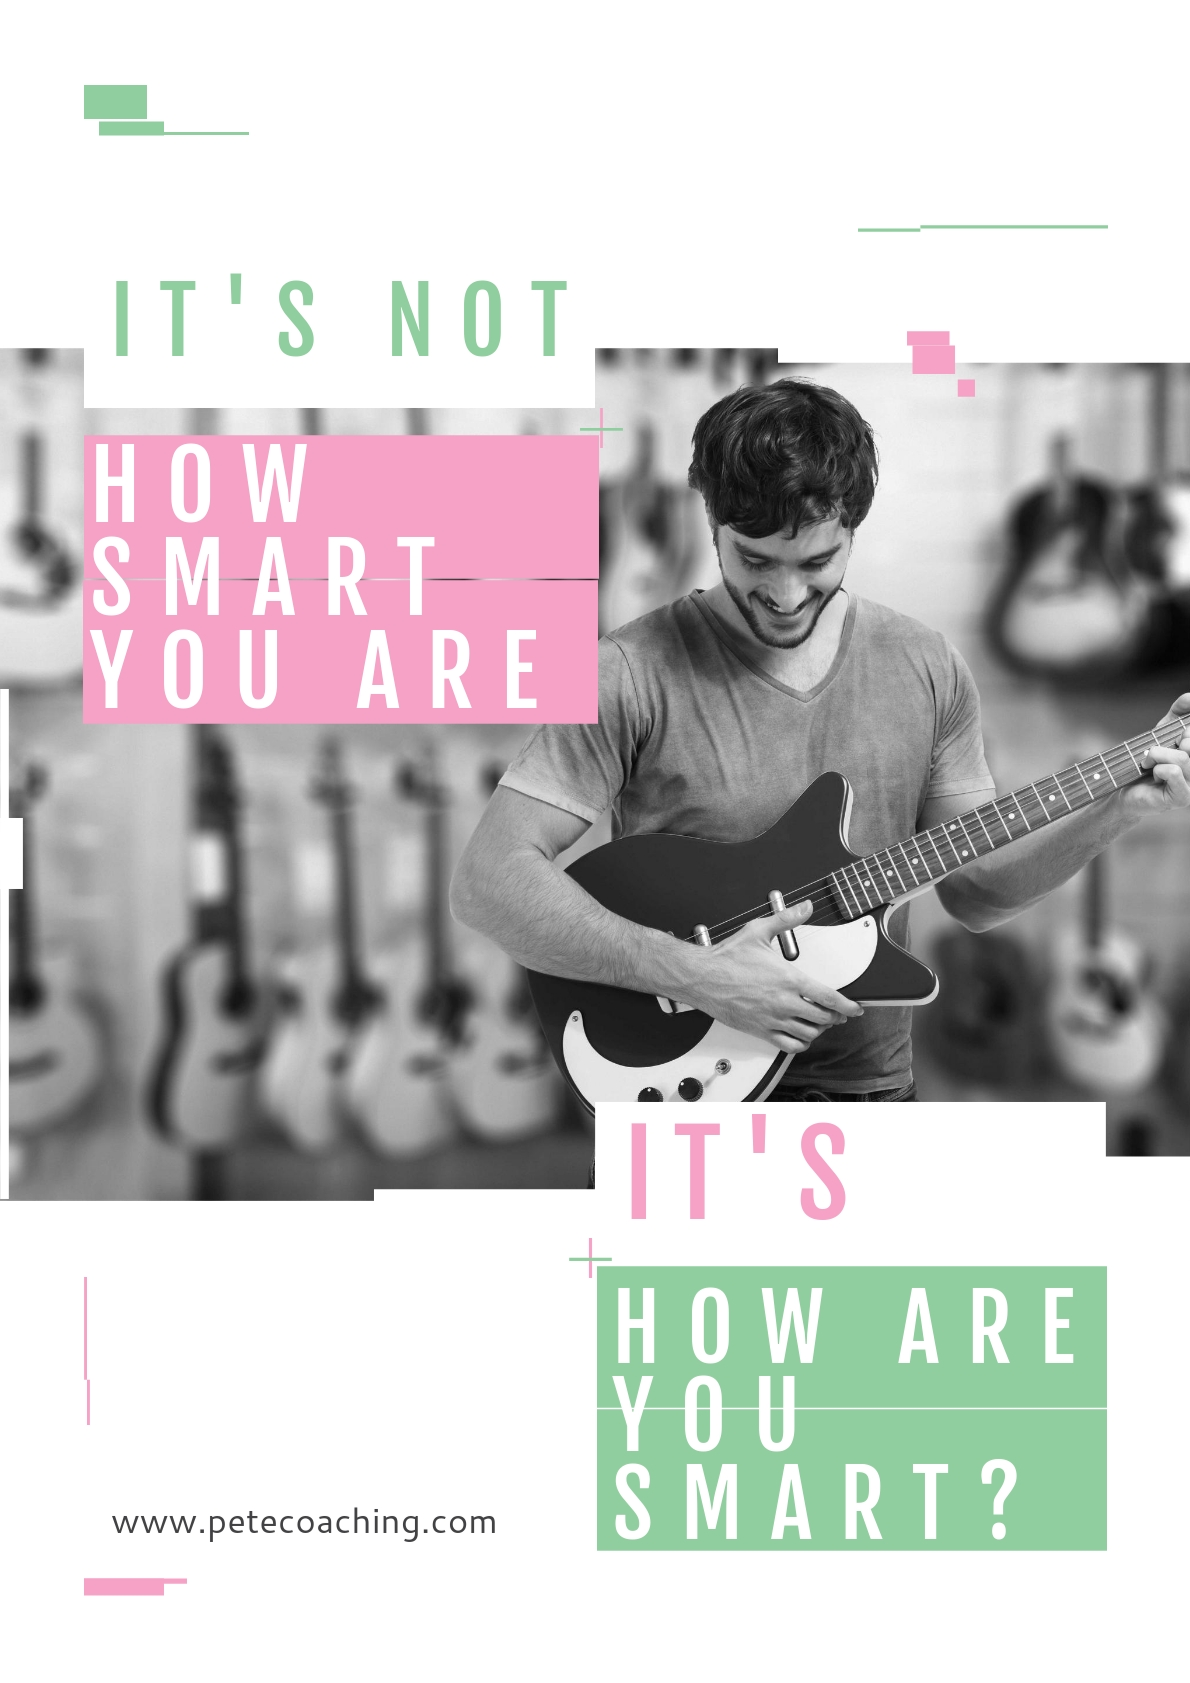 How Are You Smart Poster - Click Here to download PDF